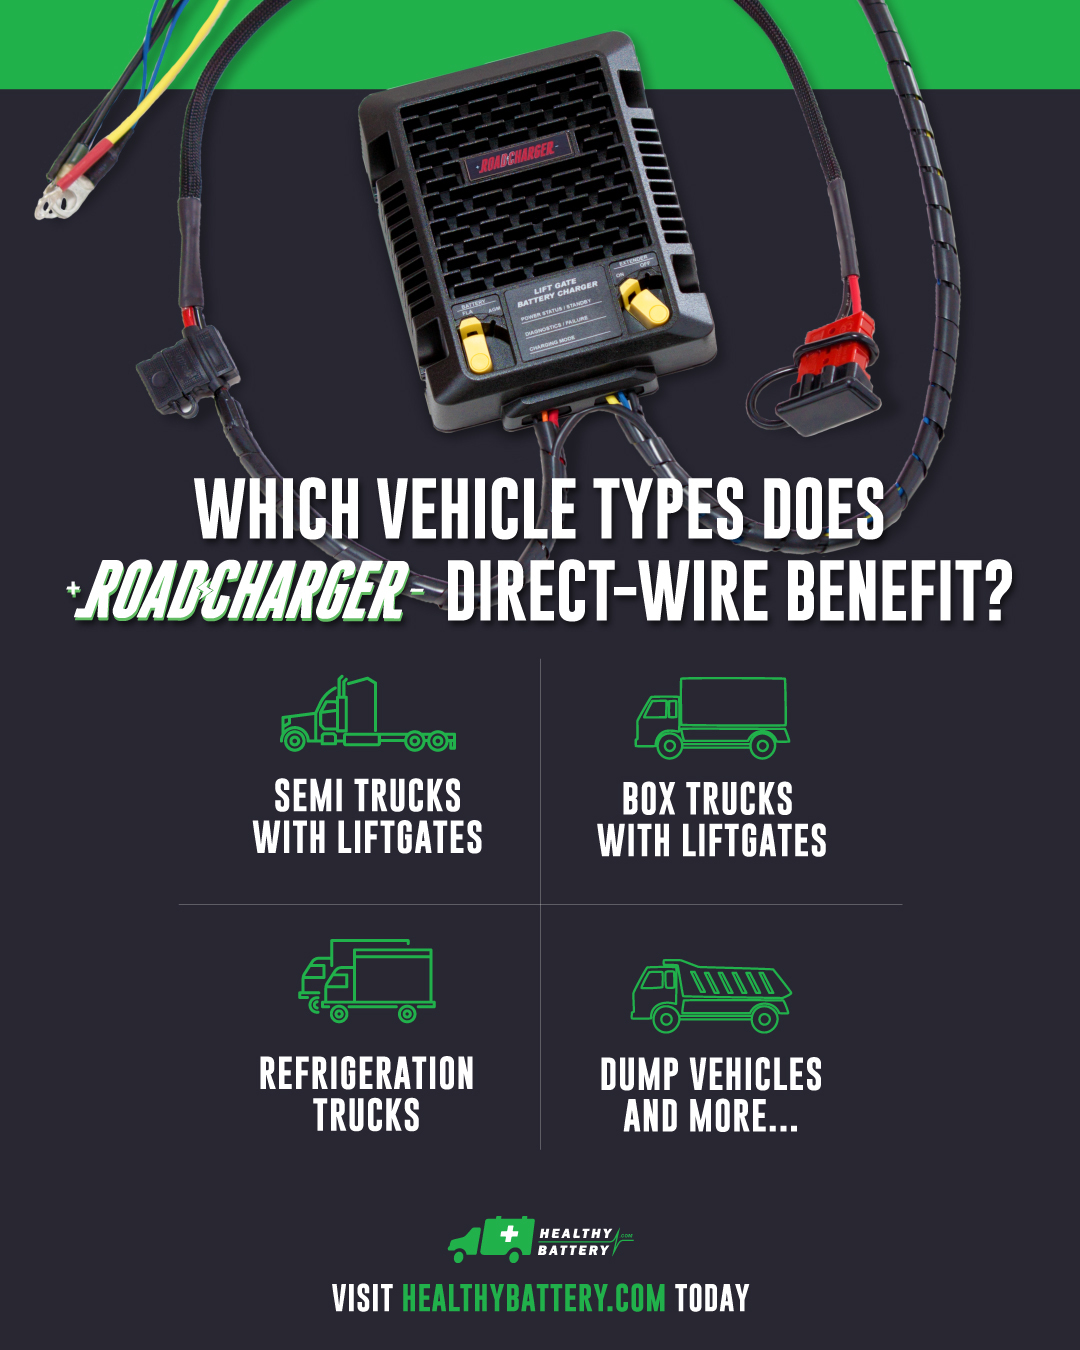 Benefits of RoadCharger direct-wire infographic